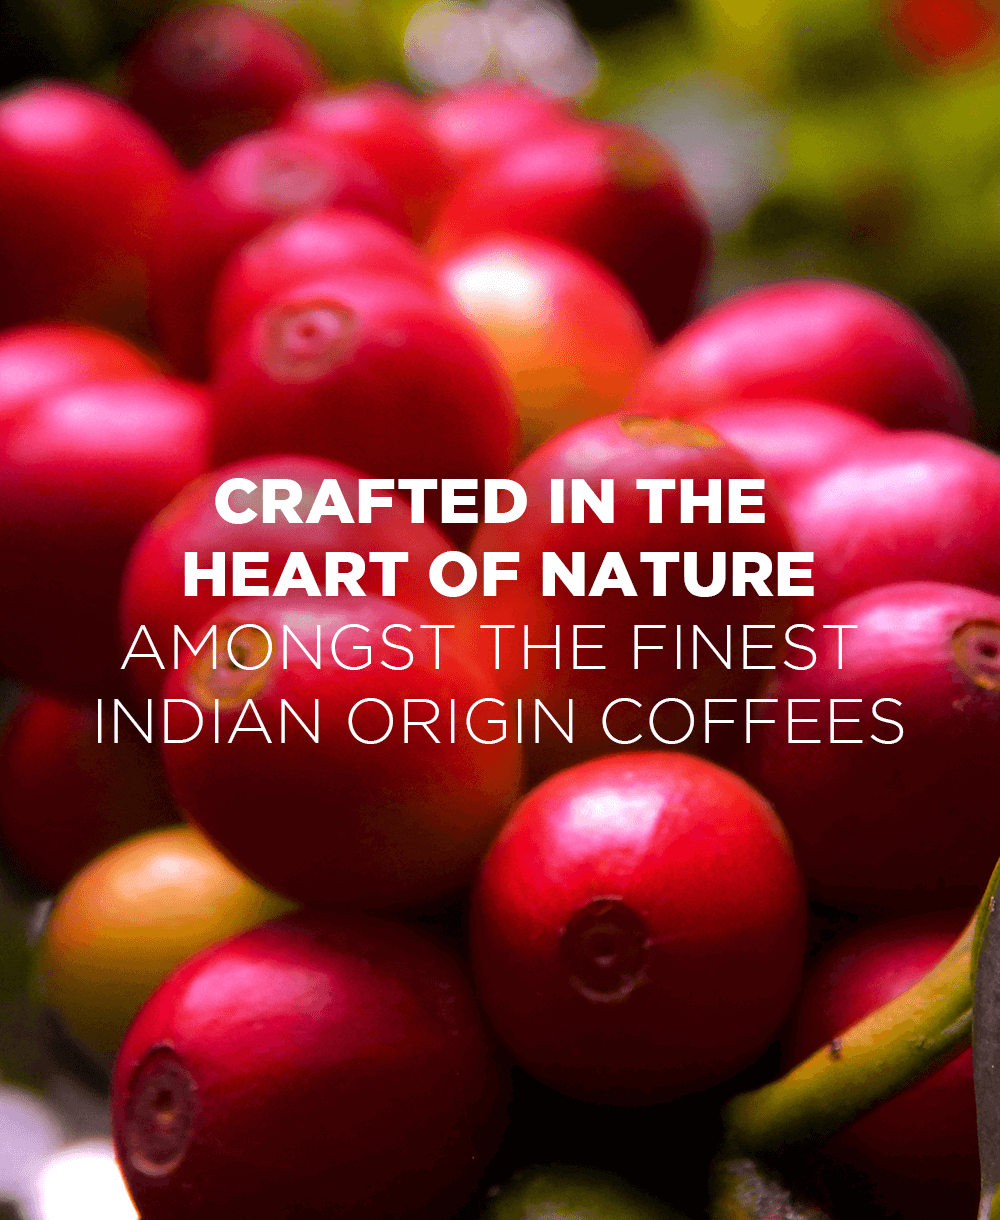 Green Beans Crafted in the heart of nature  - Mobile - Tata Coffee